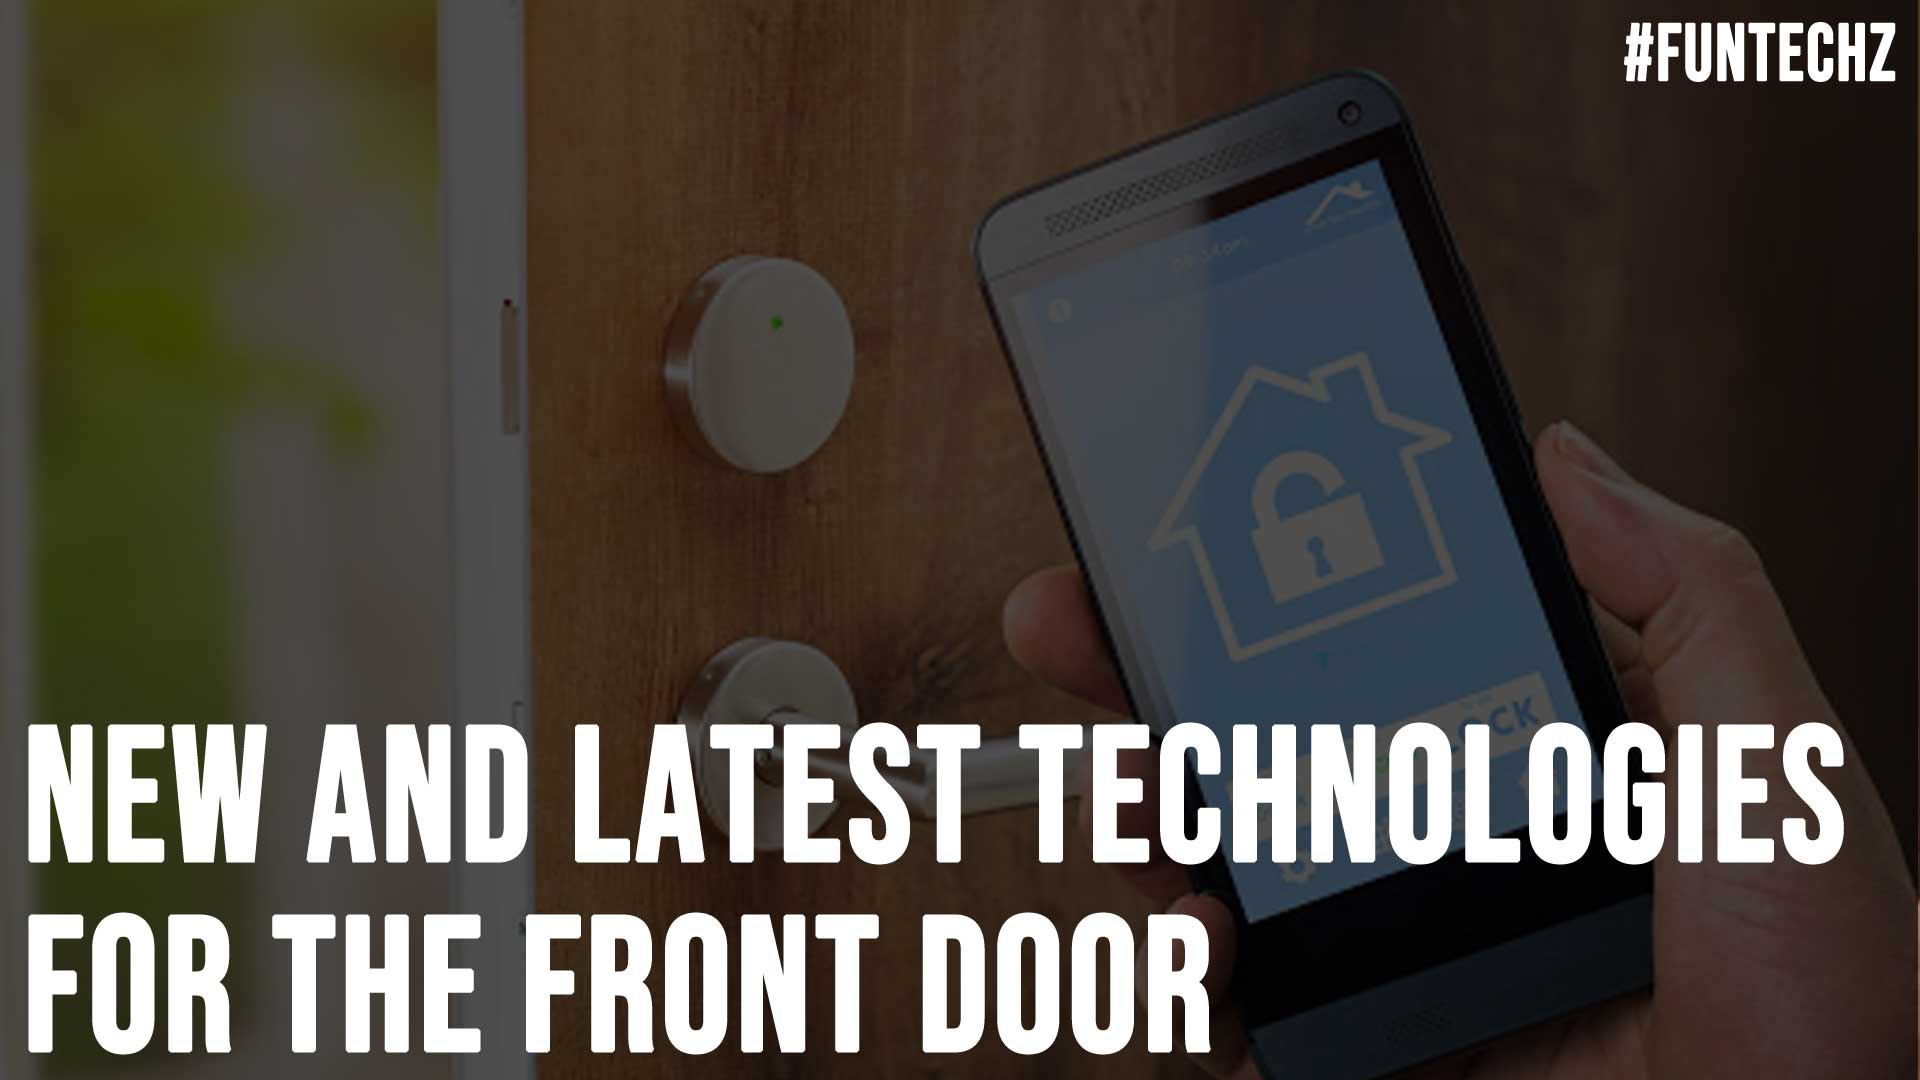 New and Latest Technologies For the Front Door